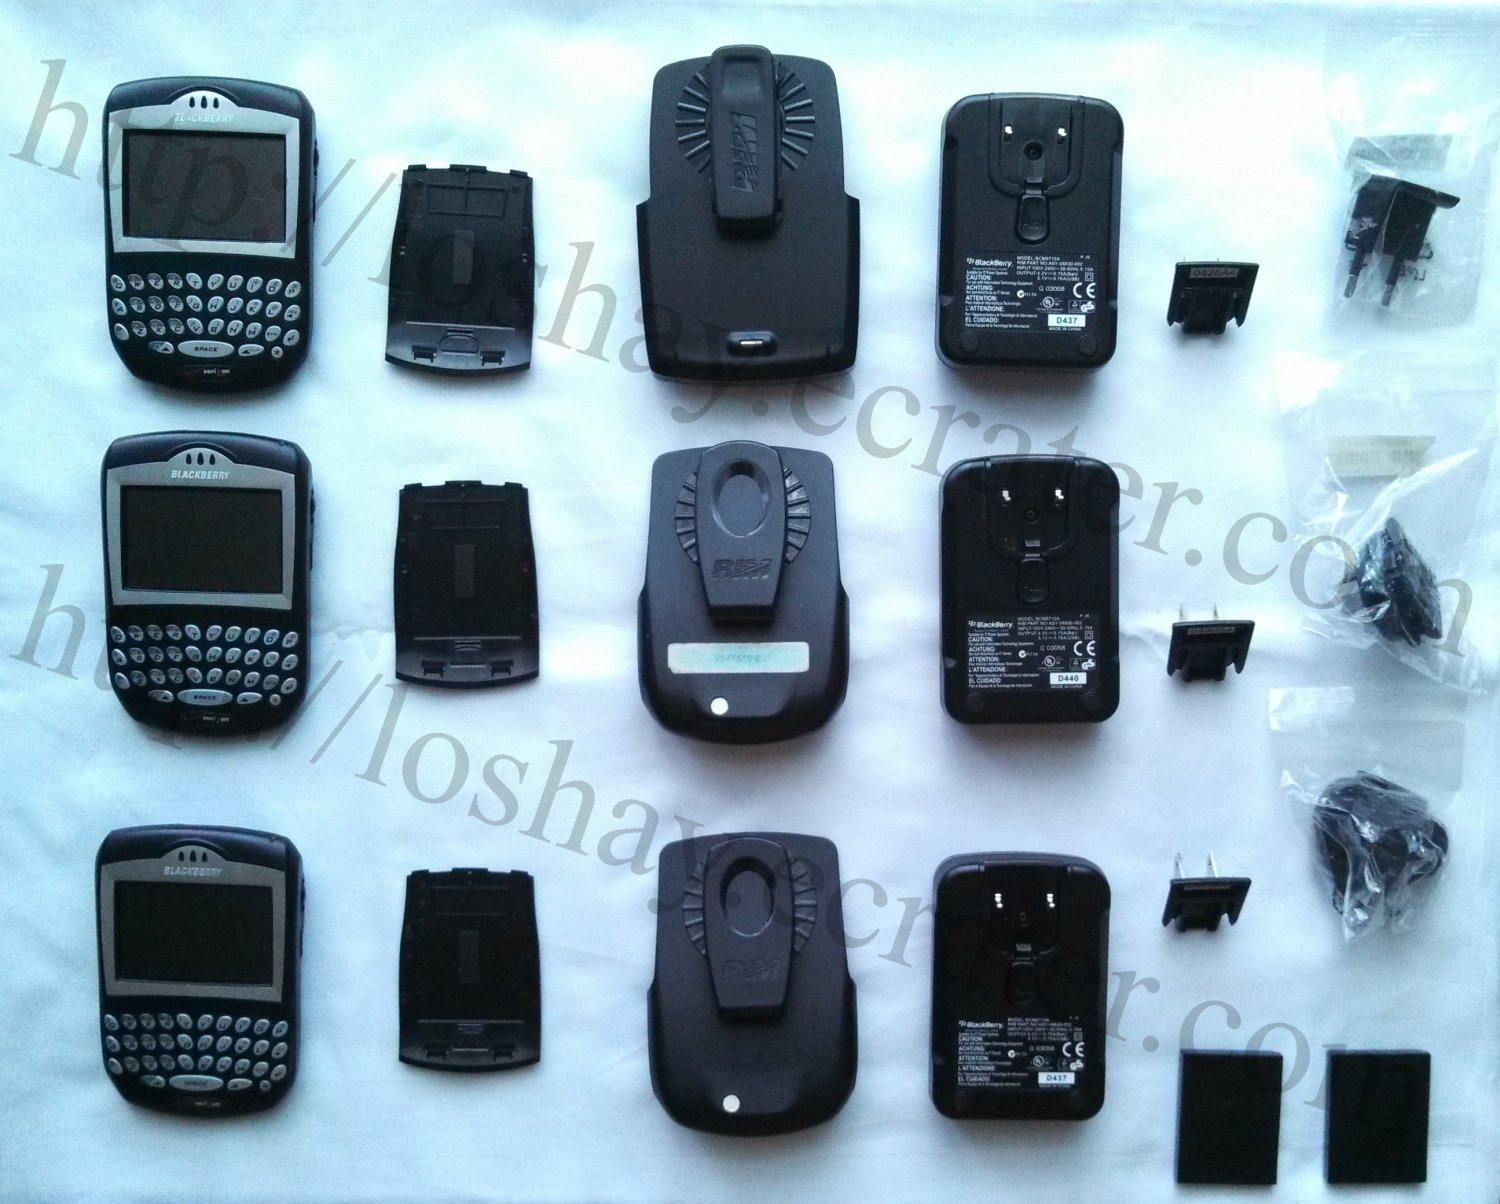 BlackBerry Smartphone Black Huge Lot Rechargeable Batteries Clip-On Holsters Power Adaptors PreOwned